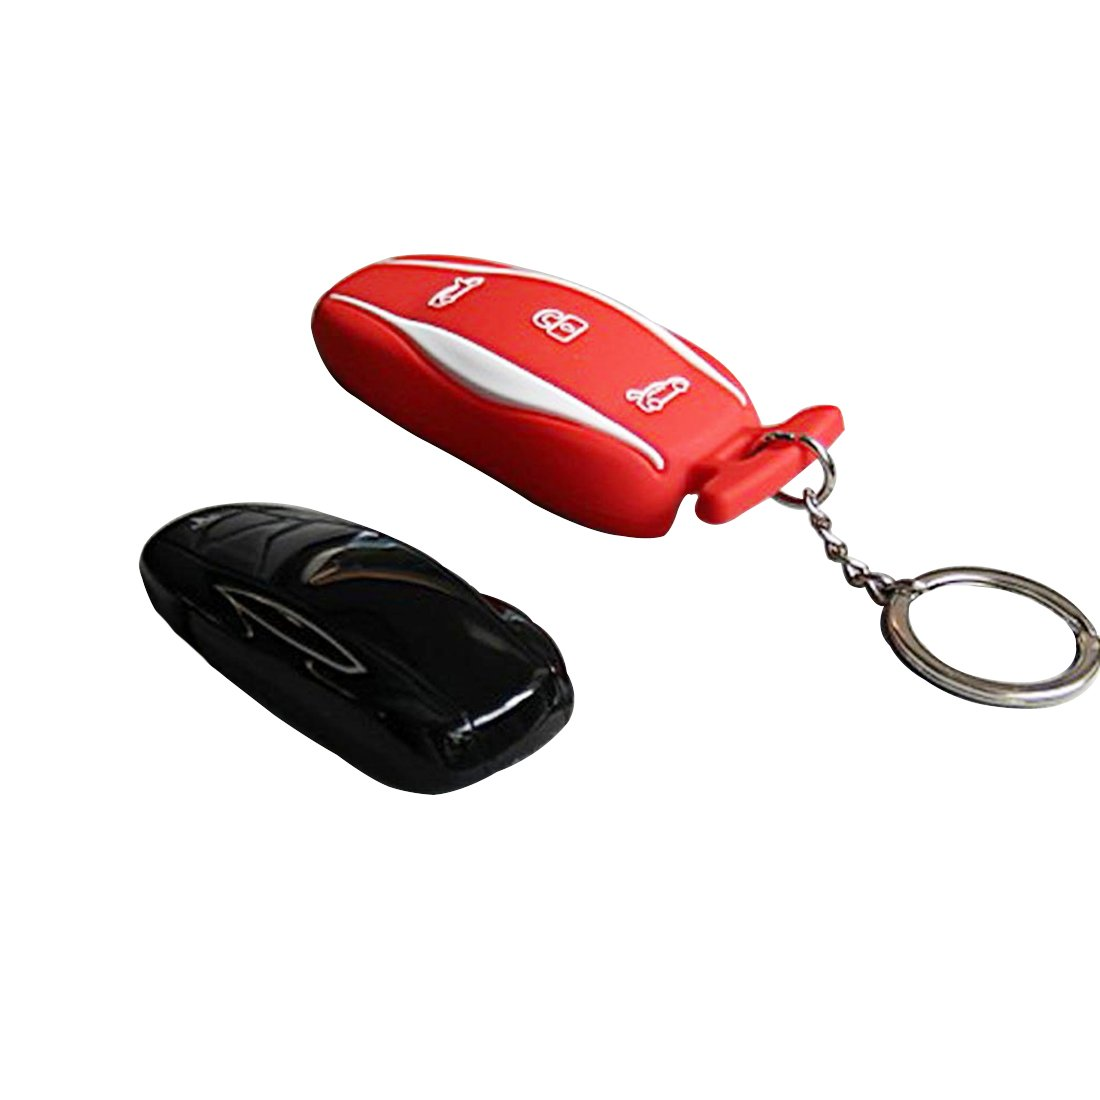 TeslaWorld Red Silicone Rubber Car Keychain Key Fob Case Remote Keyless Entry Holder Model S Red